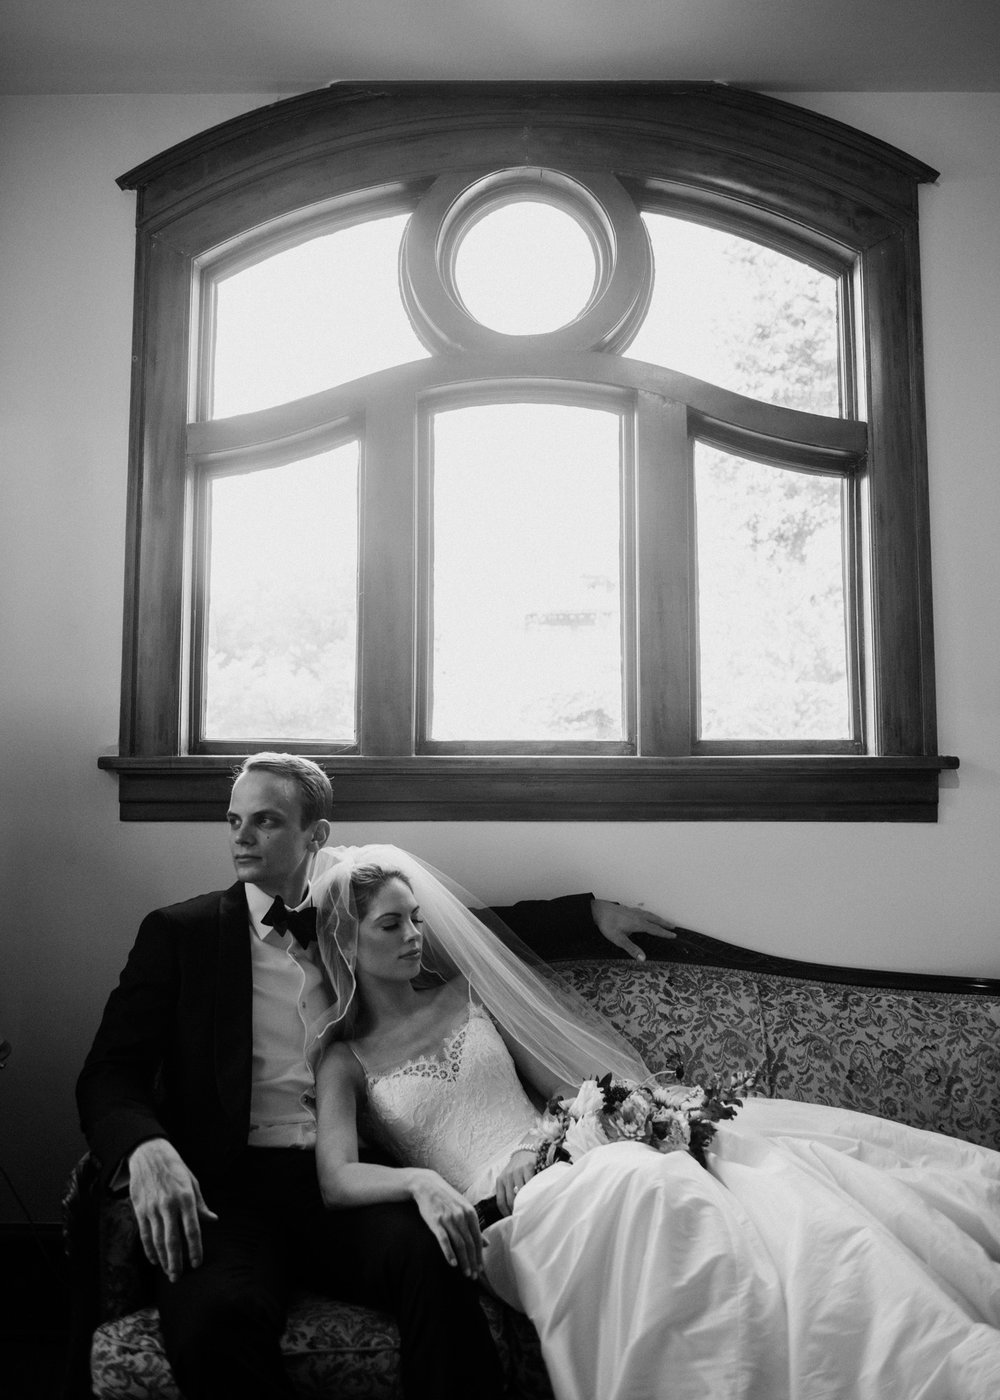 wedding day timeline advice how much time it takes photography photographer video-15.jpg